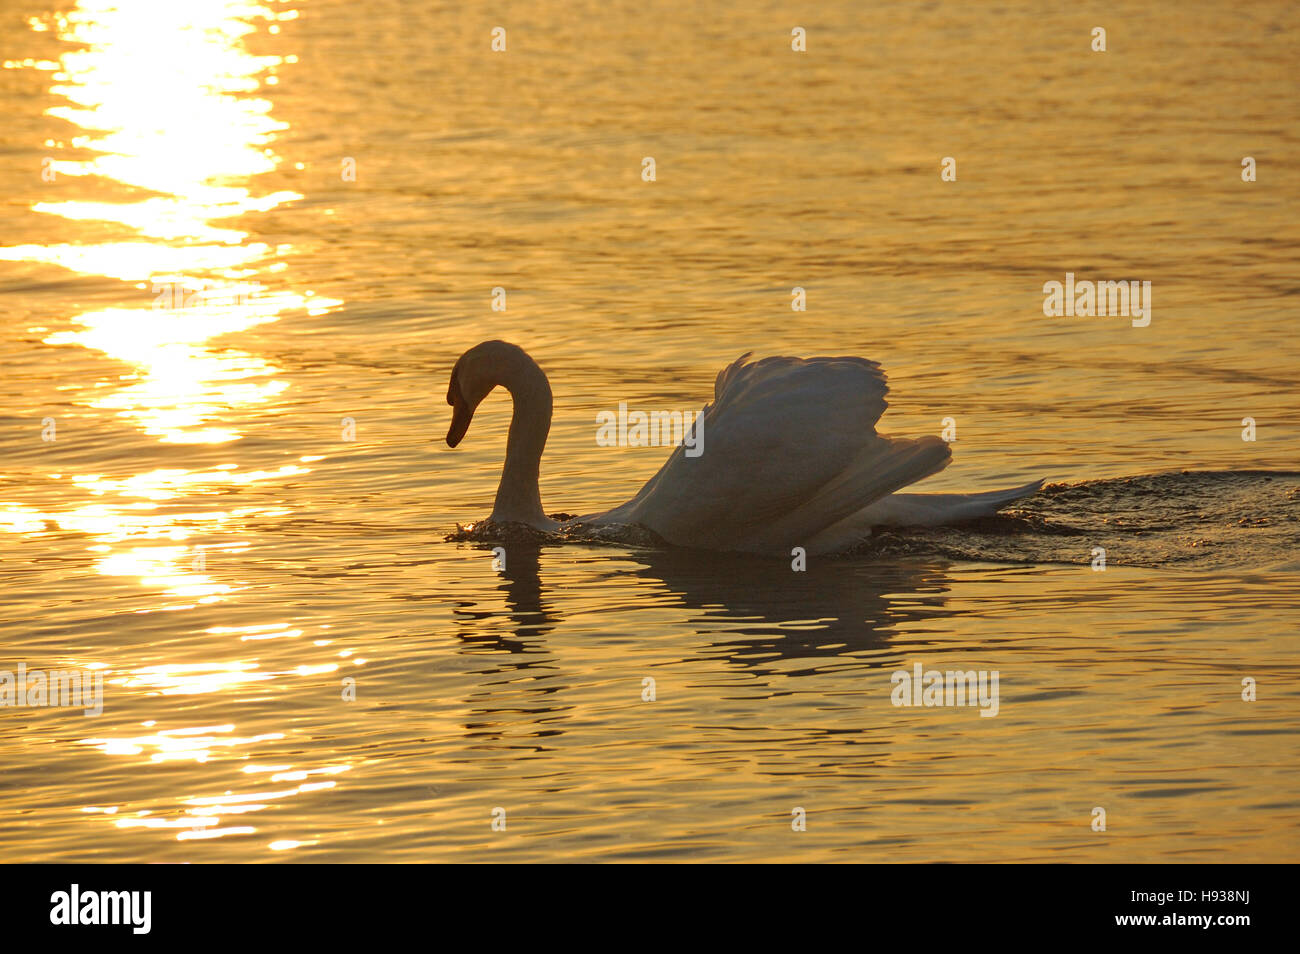 Mute Swan (Cygnus olor)  swimming in a lake as the last rays of the setting sun reflect off the water. - Stock Image